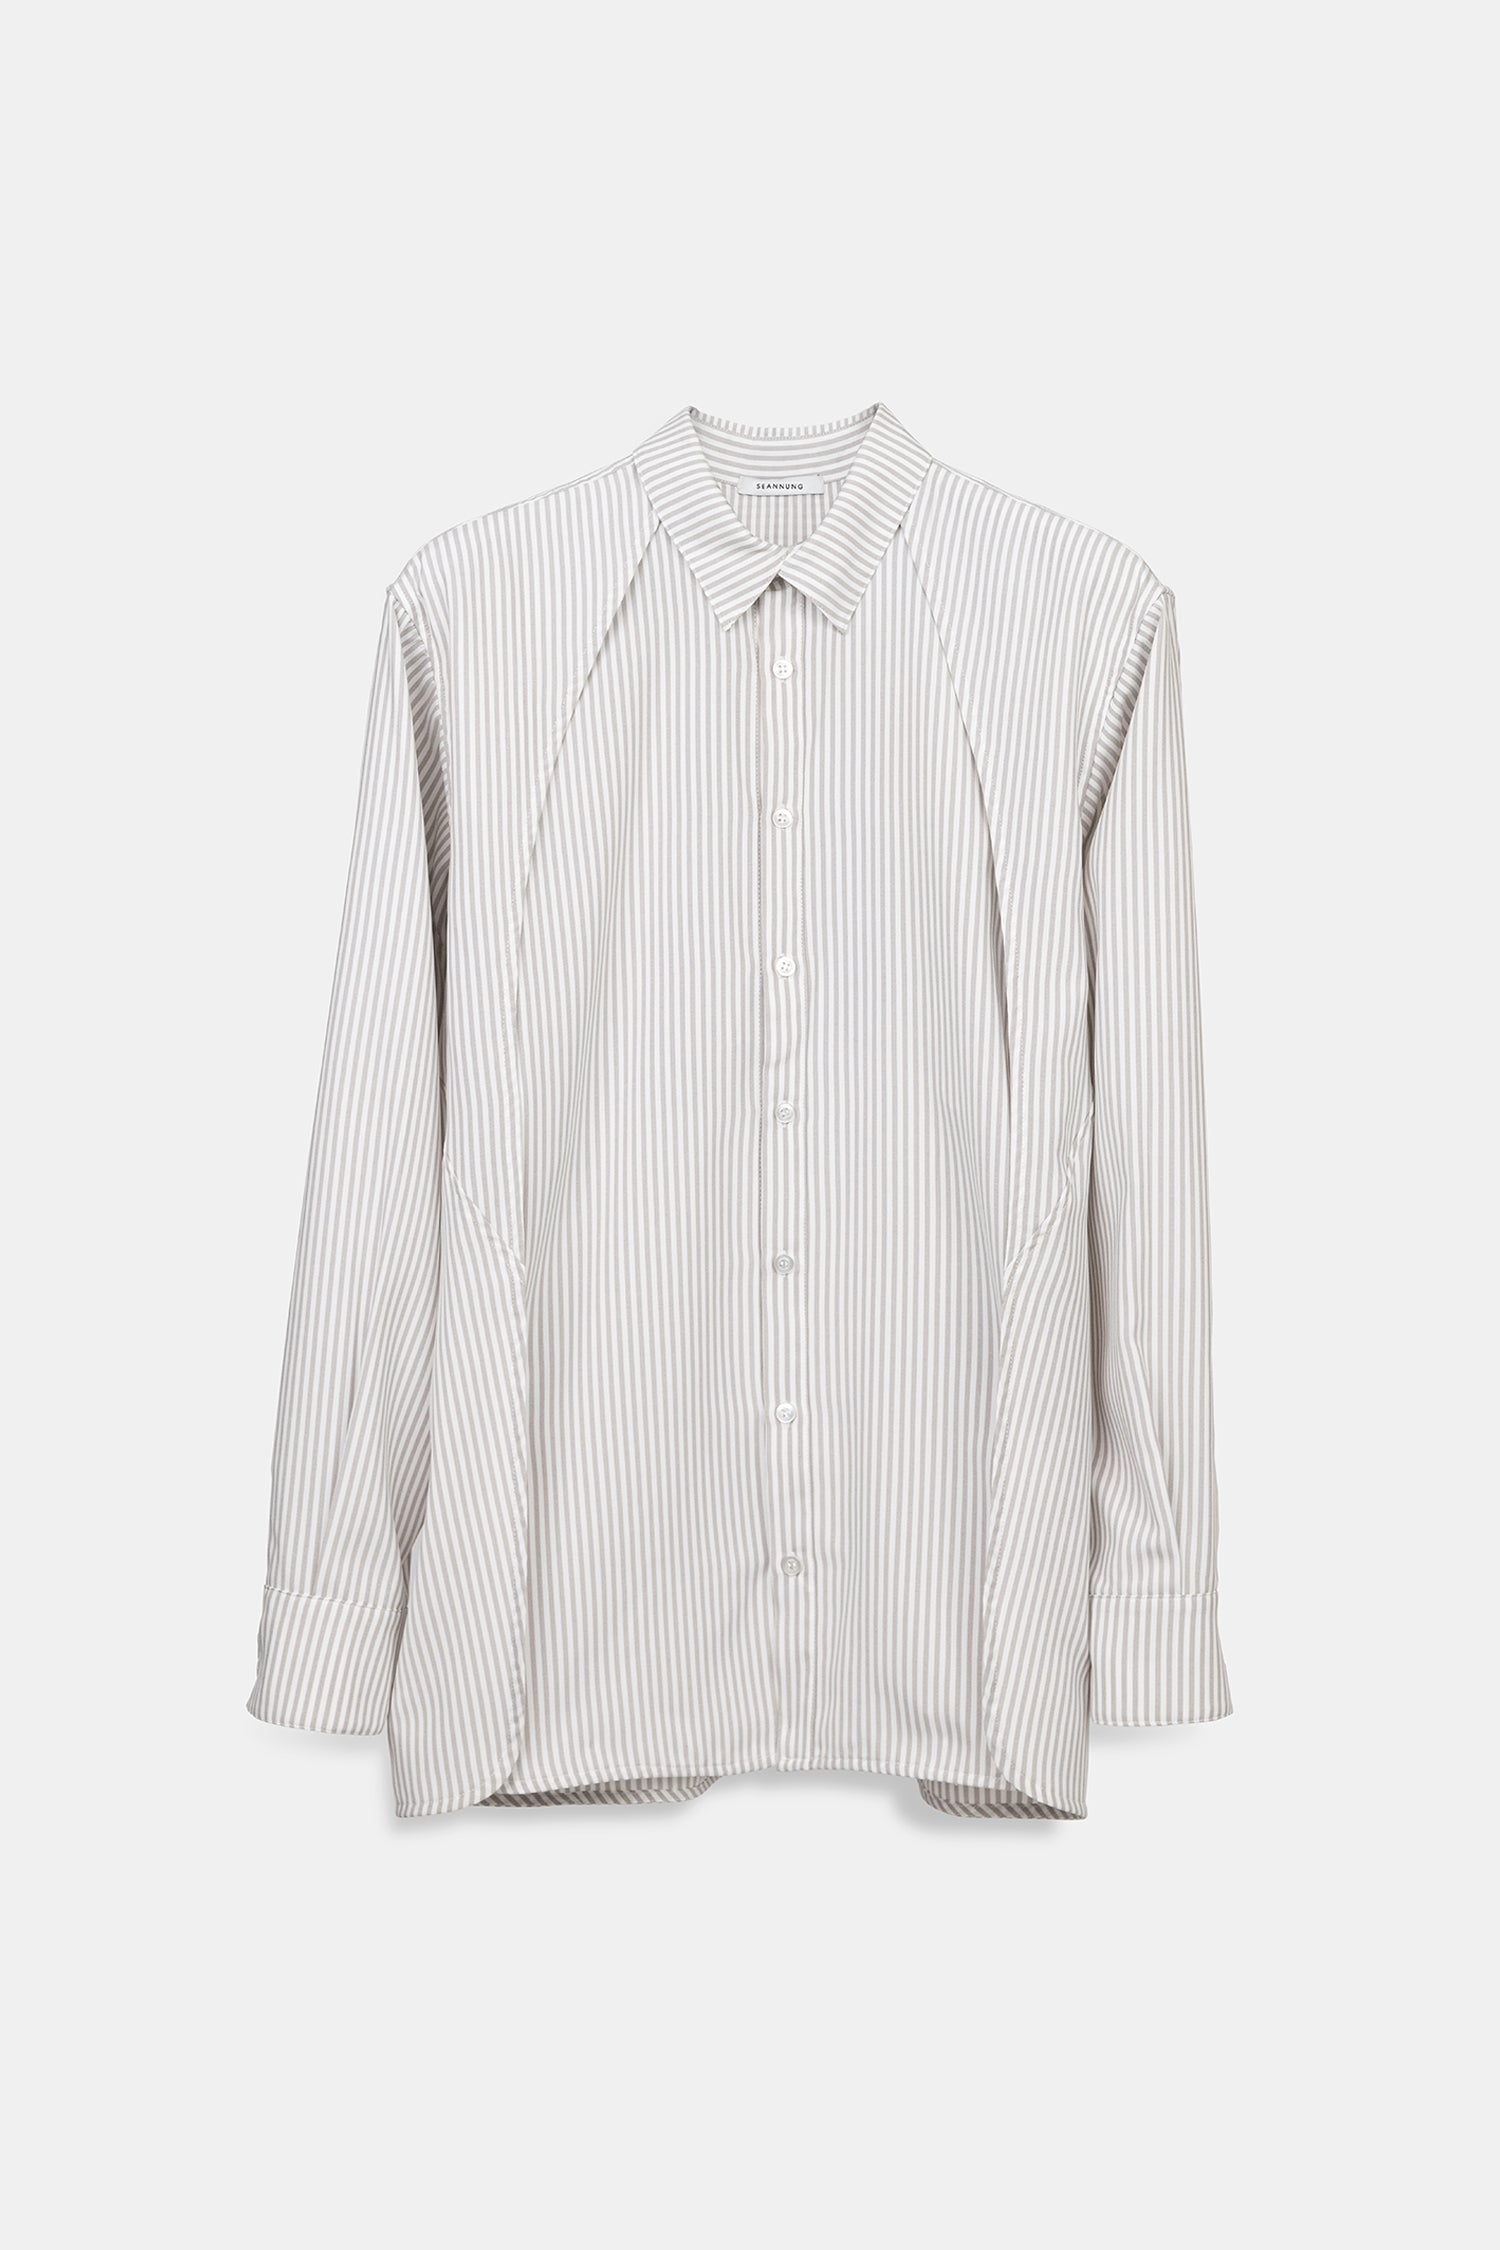 SEANNUNG - 條紋披肩襯衫 Striped Pattern Double Layered Shoulder Detail Shirt- Women